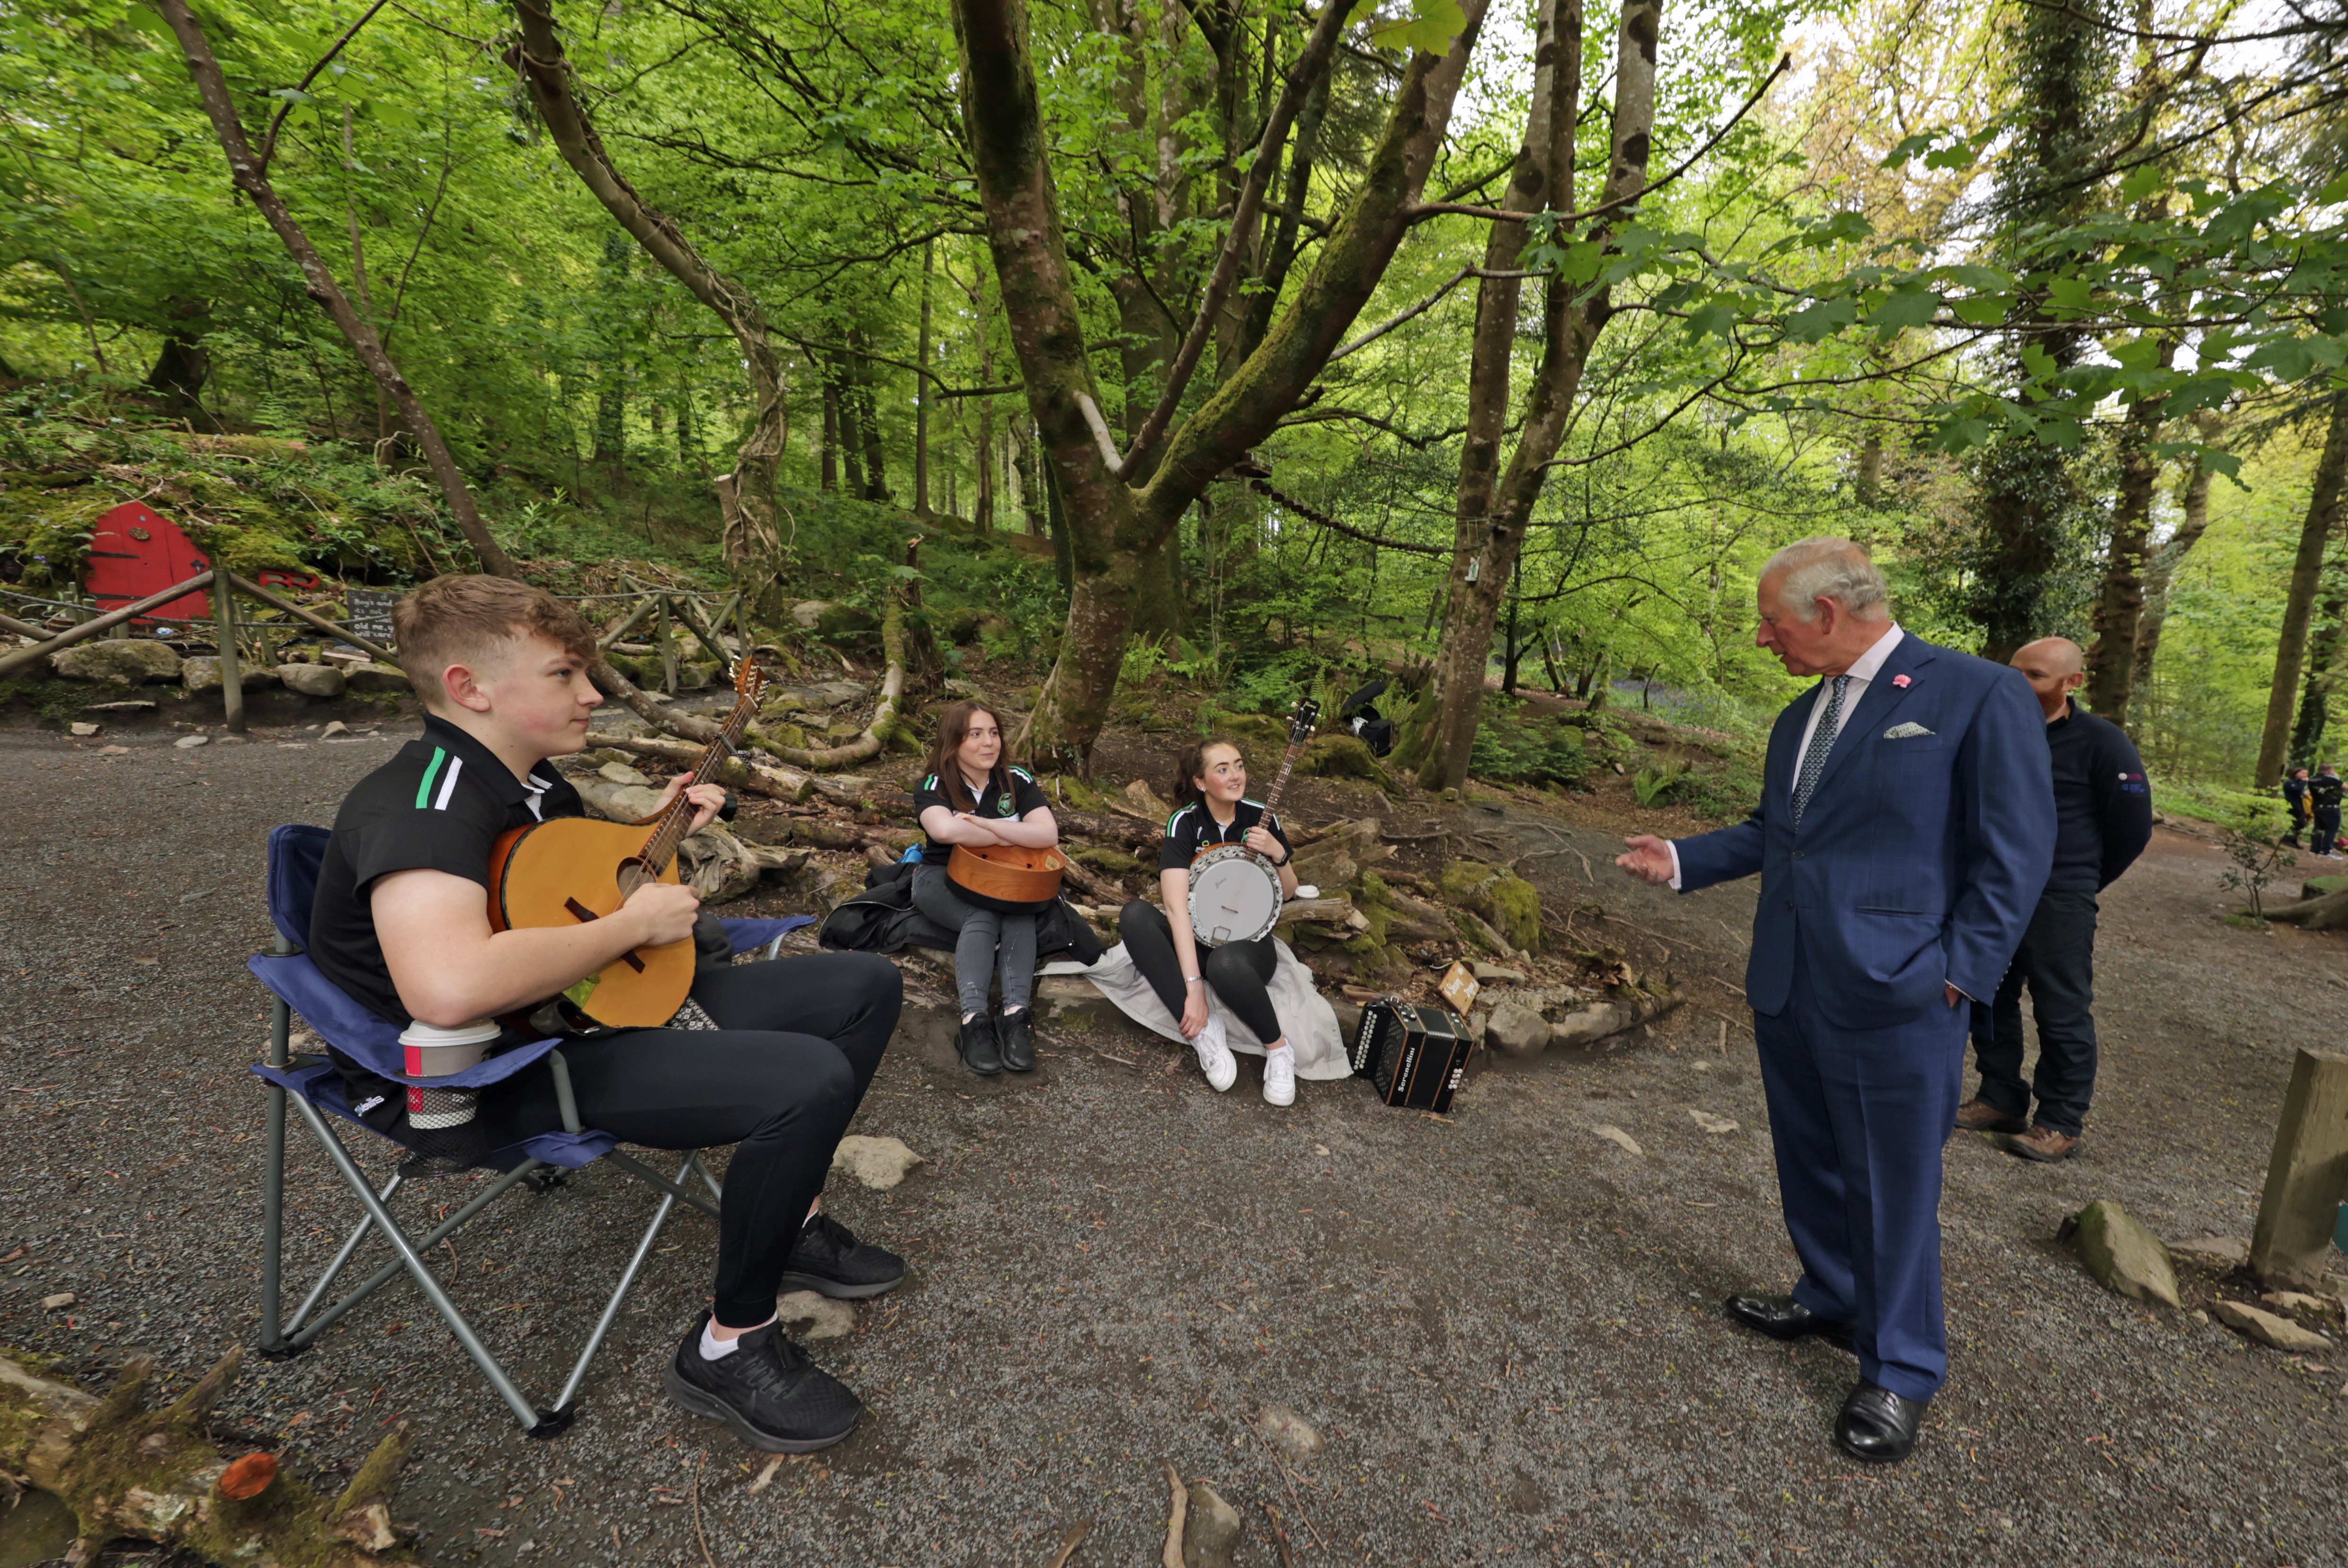 <p>The Prince of Wales talks with (left to right) Brendan O'Sullivan playing bouzouki, Ciara Grant playing bodhran, and Claire Gasey playing banjo, from the the Ring of Gullion Traditional Arts Partnership, during a visit to Slieve Gullion Forest Park in Meigh, Newry. Picture date: Tuesday May 18, 2021.</p>